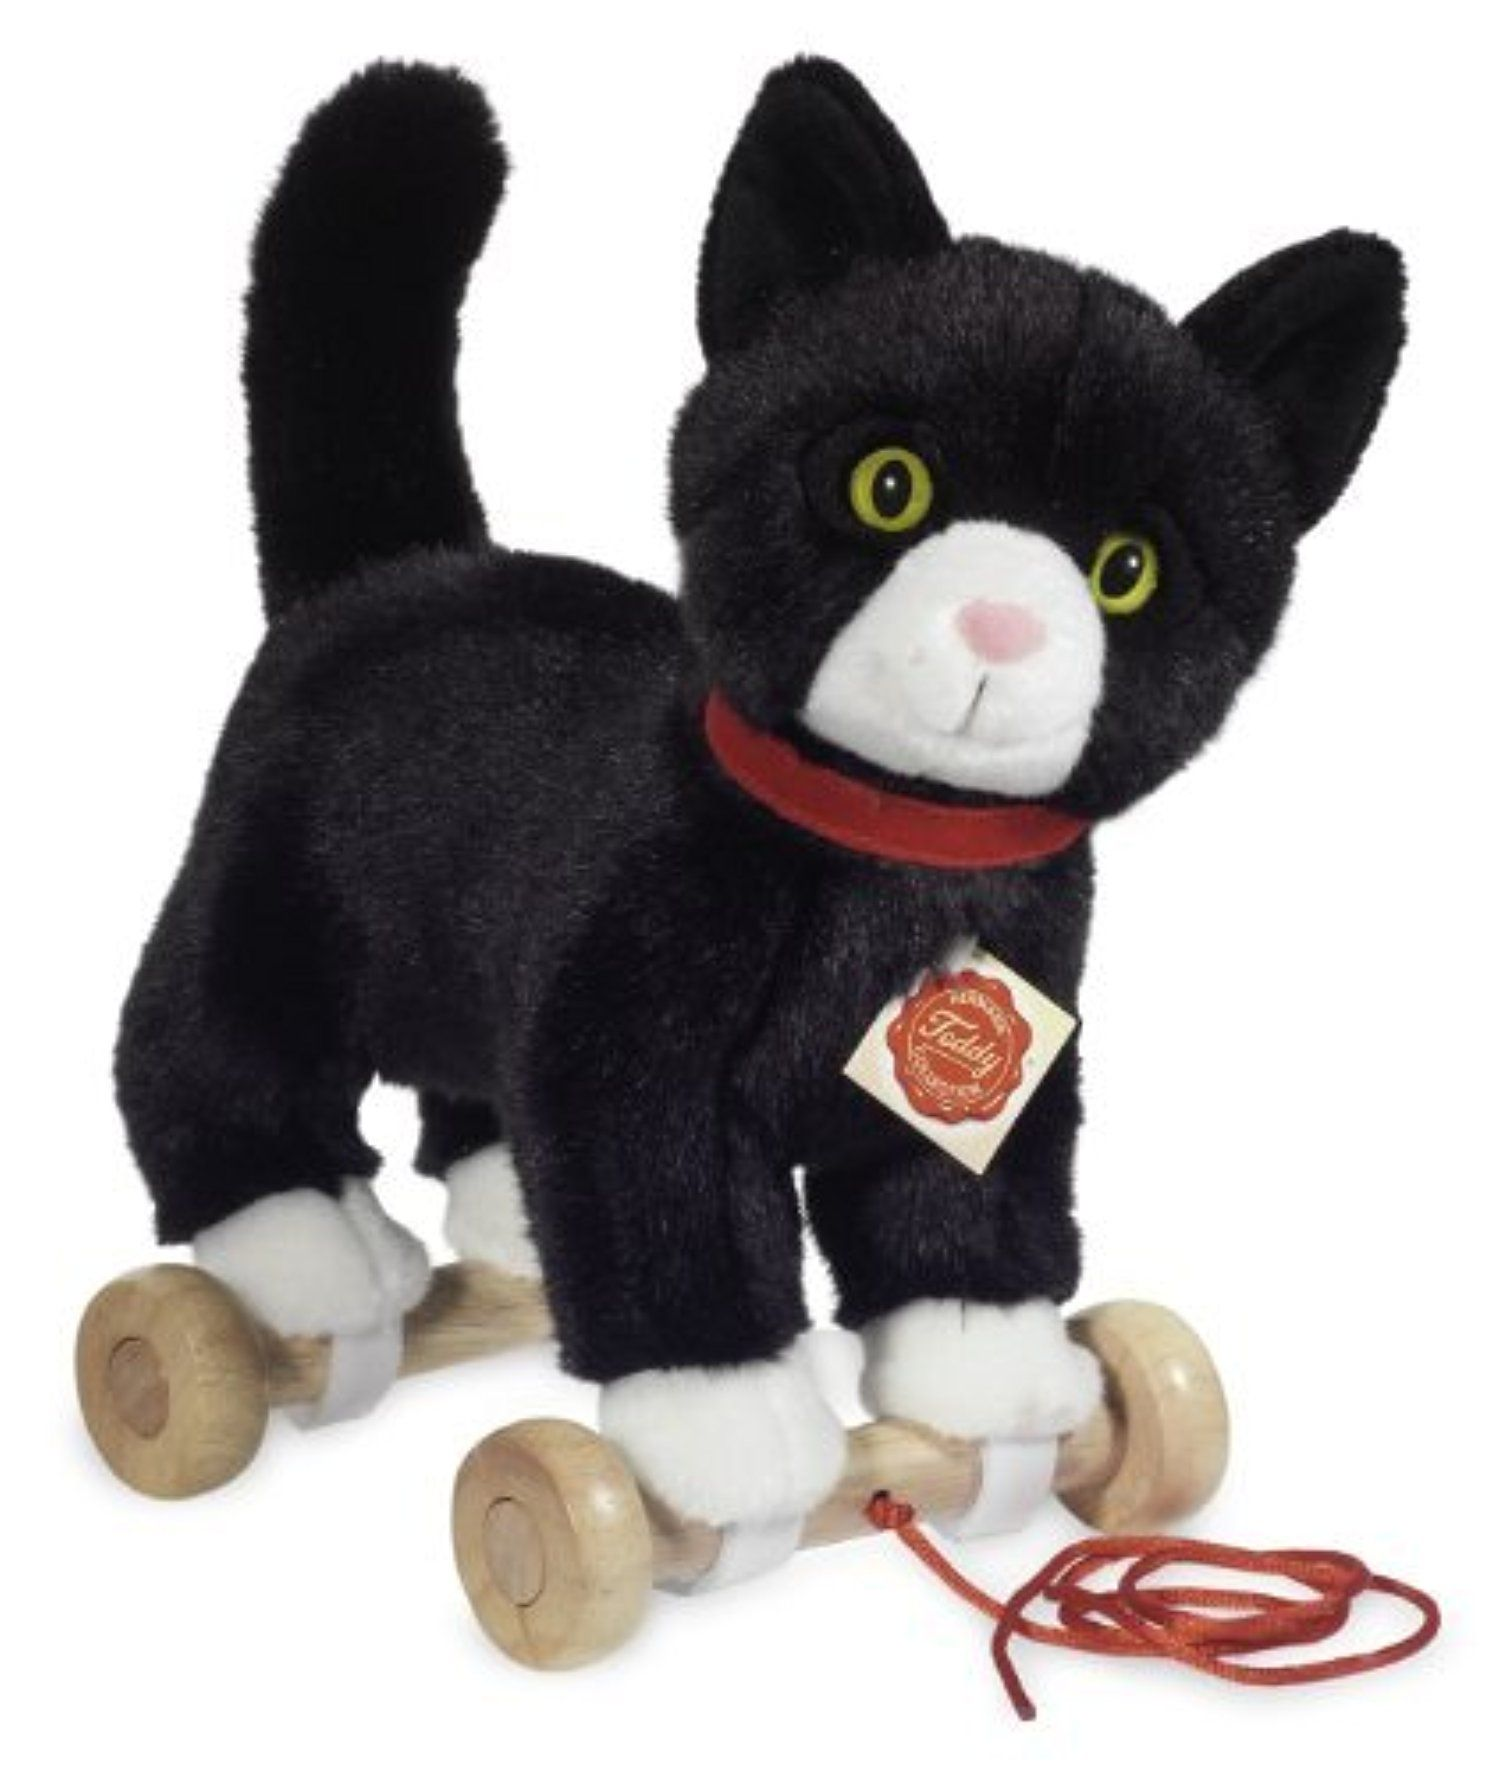 Plush Soft Toy Black White Cat Pull Along Toy On Wooden Wheels